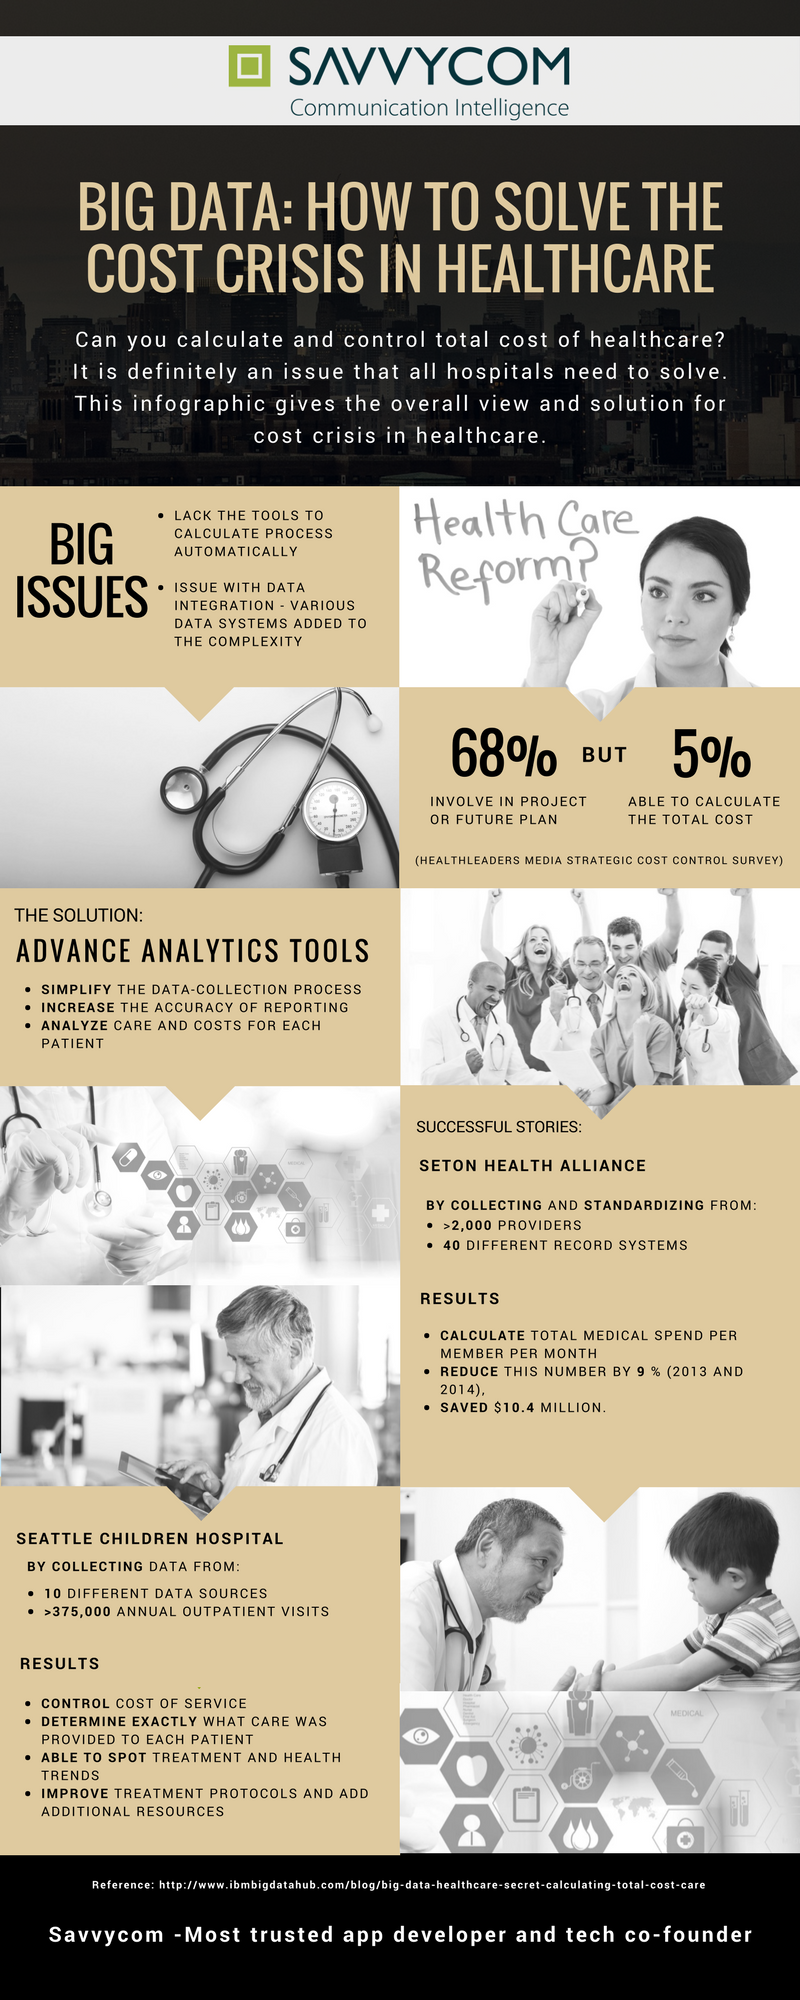 big-data-how-to-solve-the-cost-crisis-in-healthcare